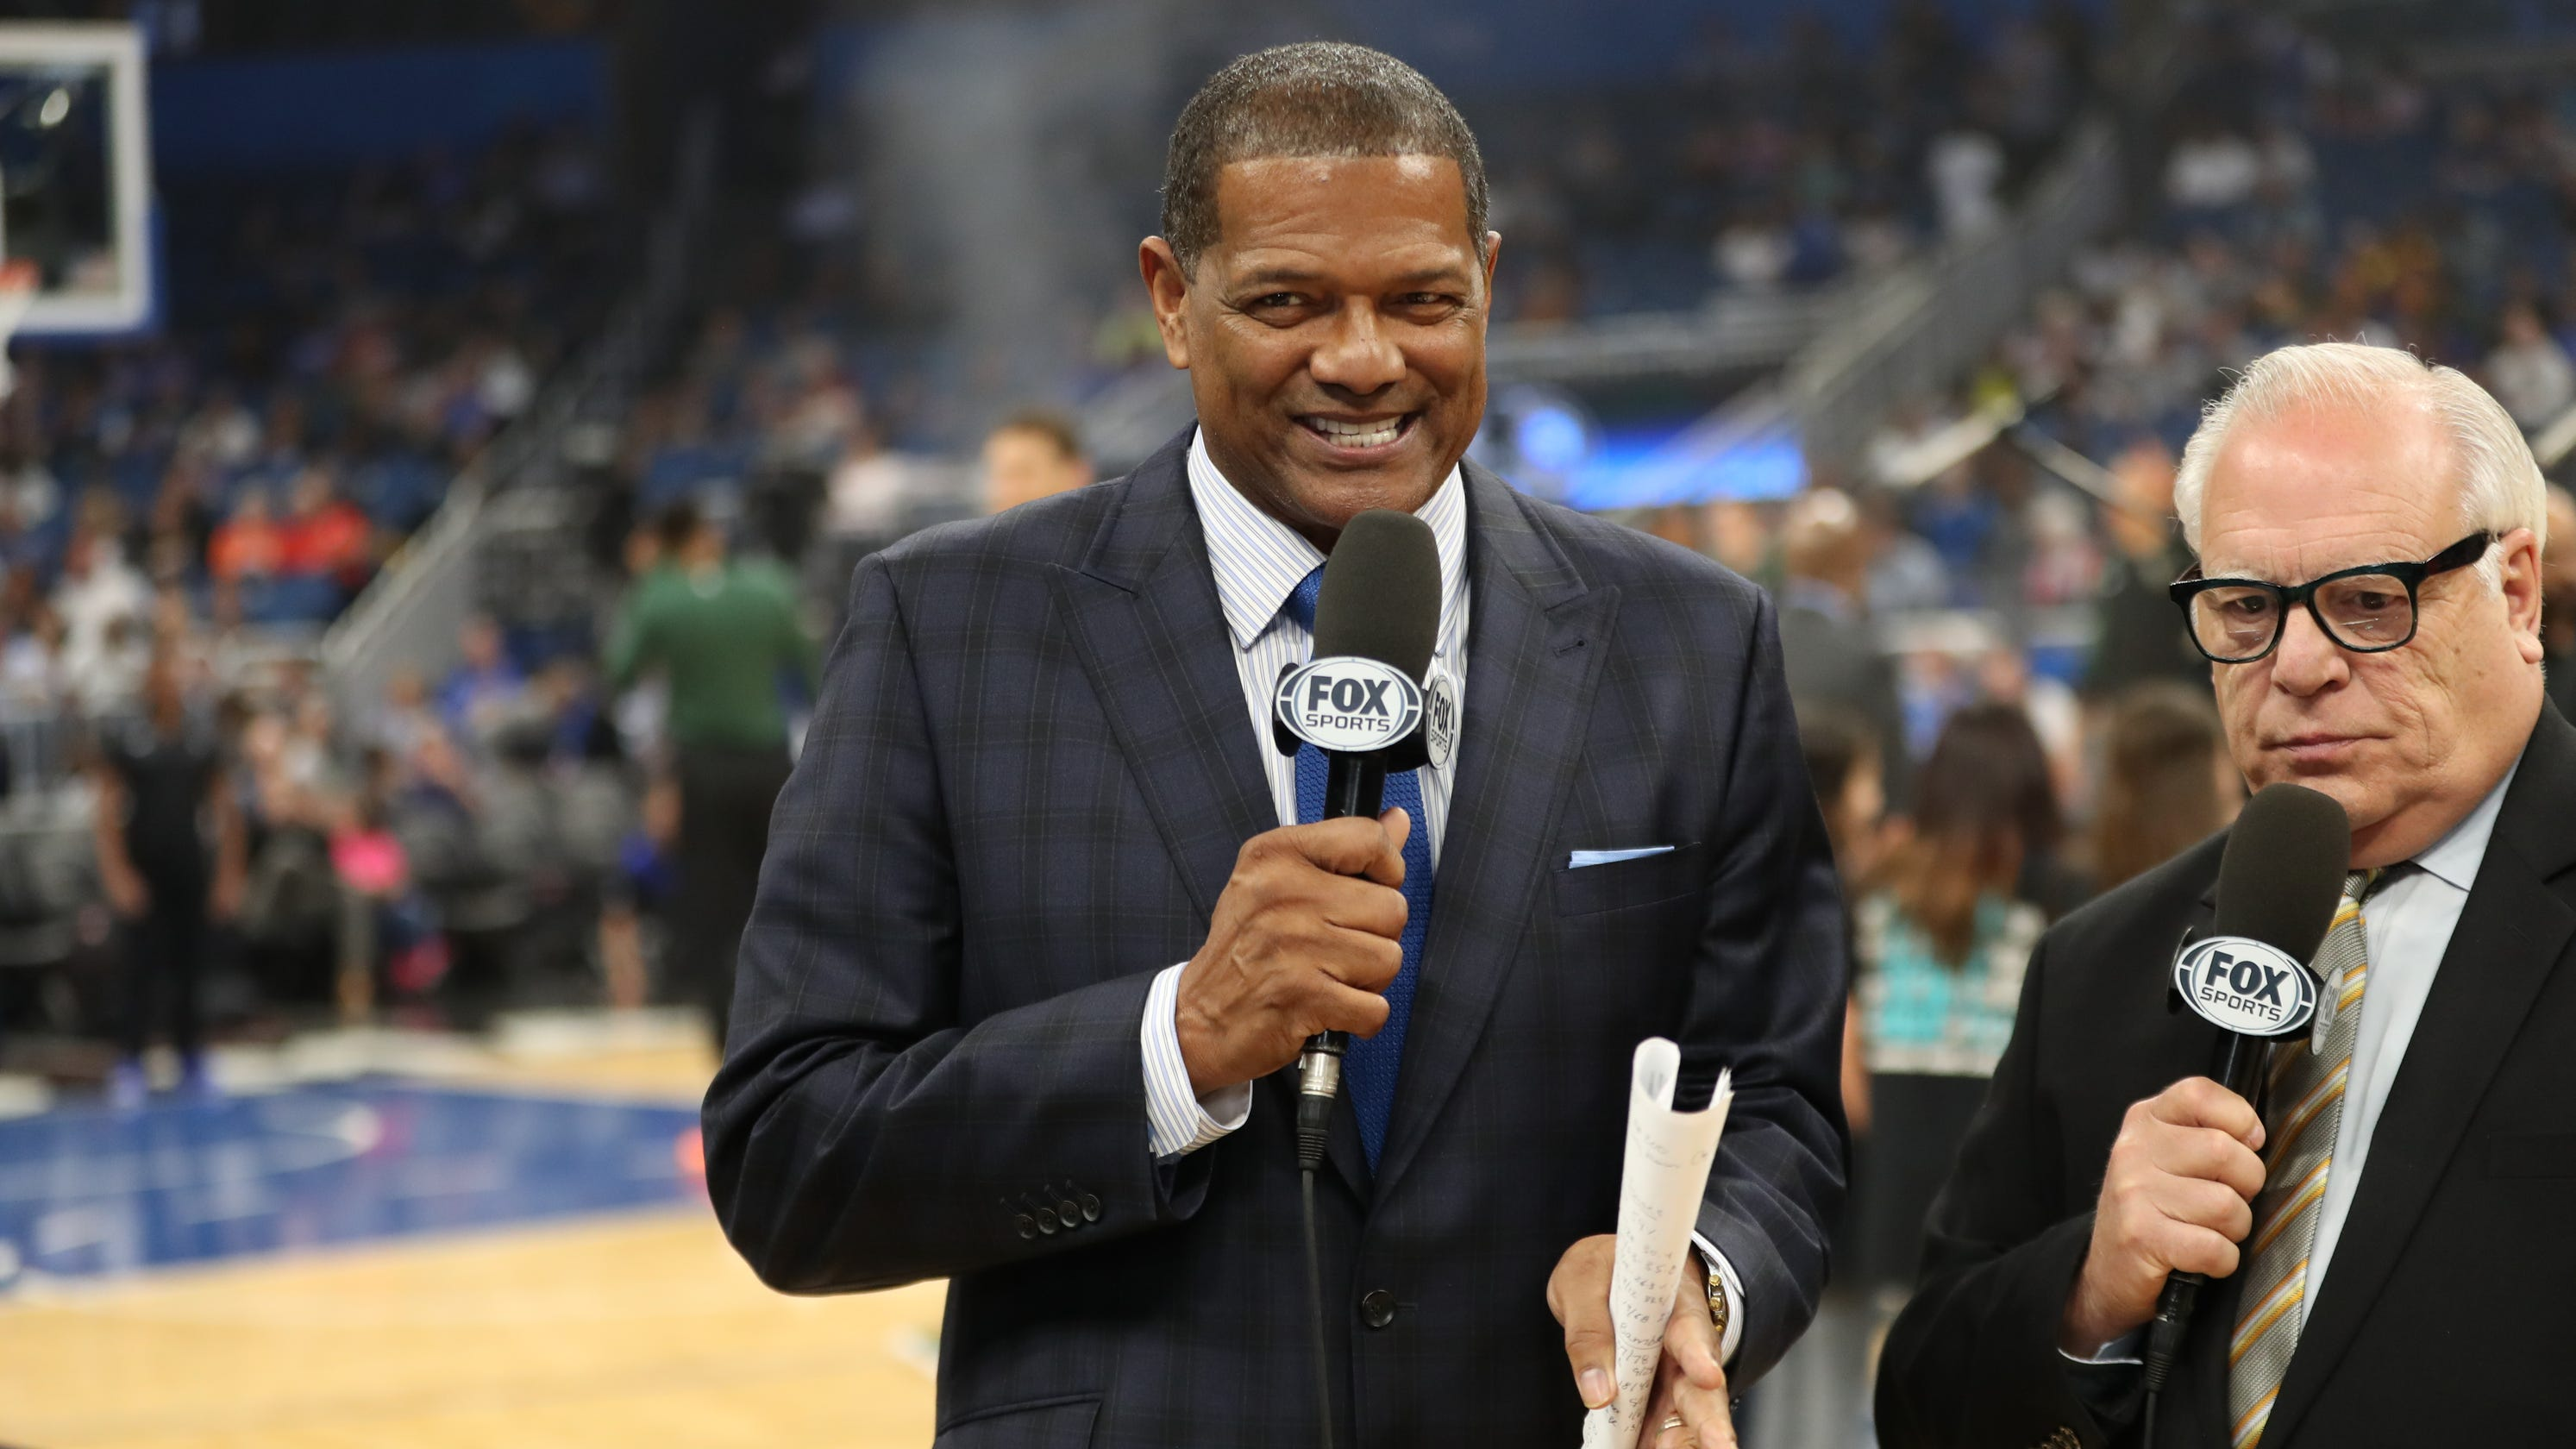 Bucks legend Marques Johnson goes viral showing he can still dunk at age 64